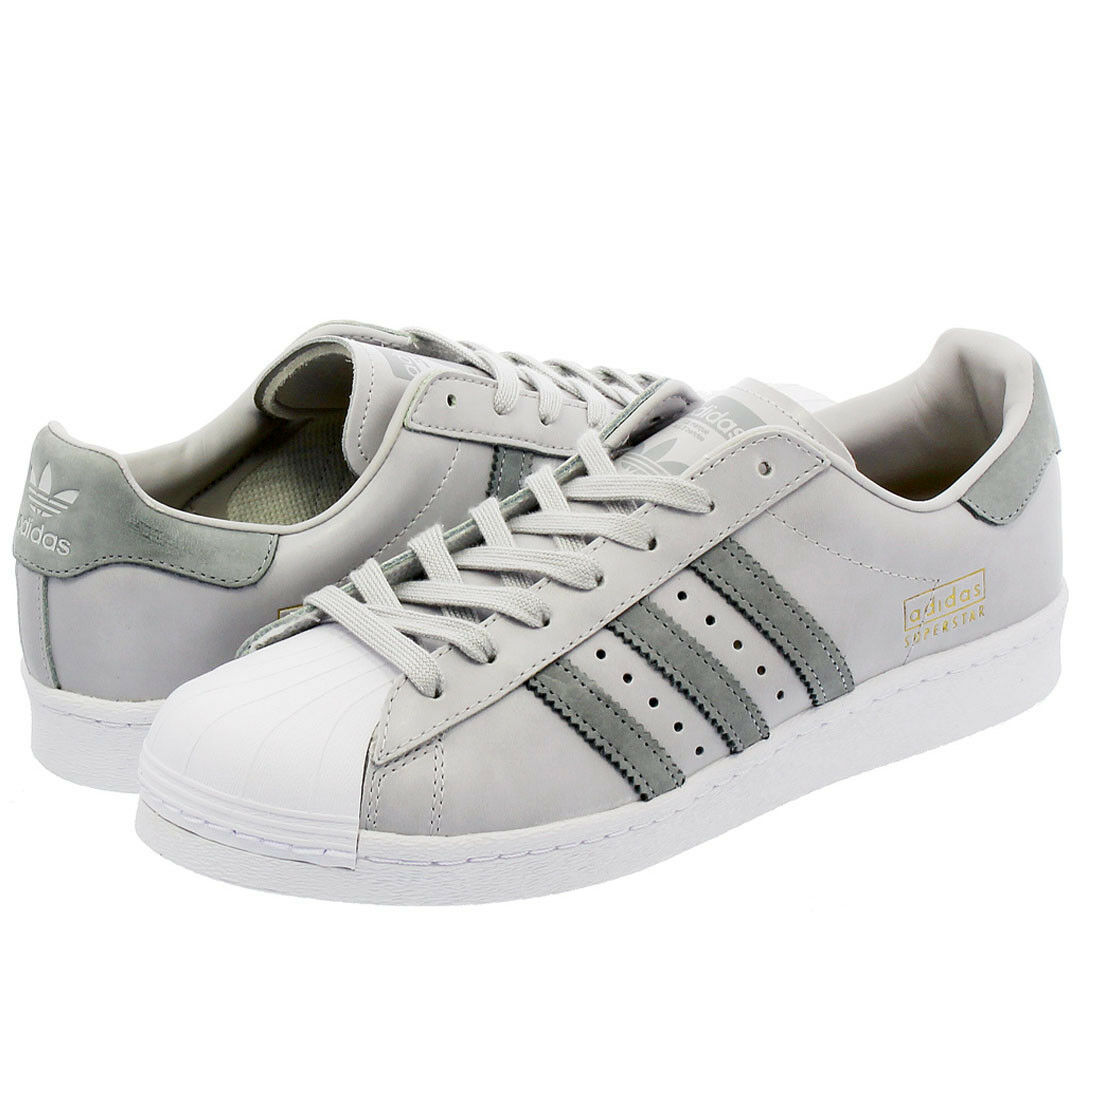 Adidas  Originals Superstar Boost Grau Weiß  Adidas Herren Trainers Sports Shelltoe Schuhe 06684f